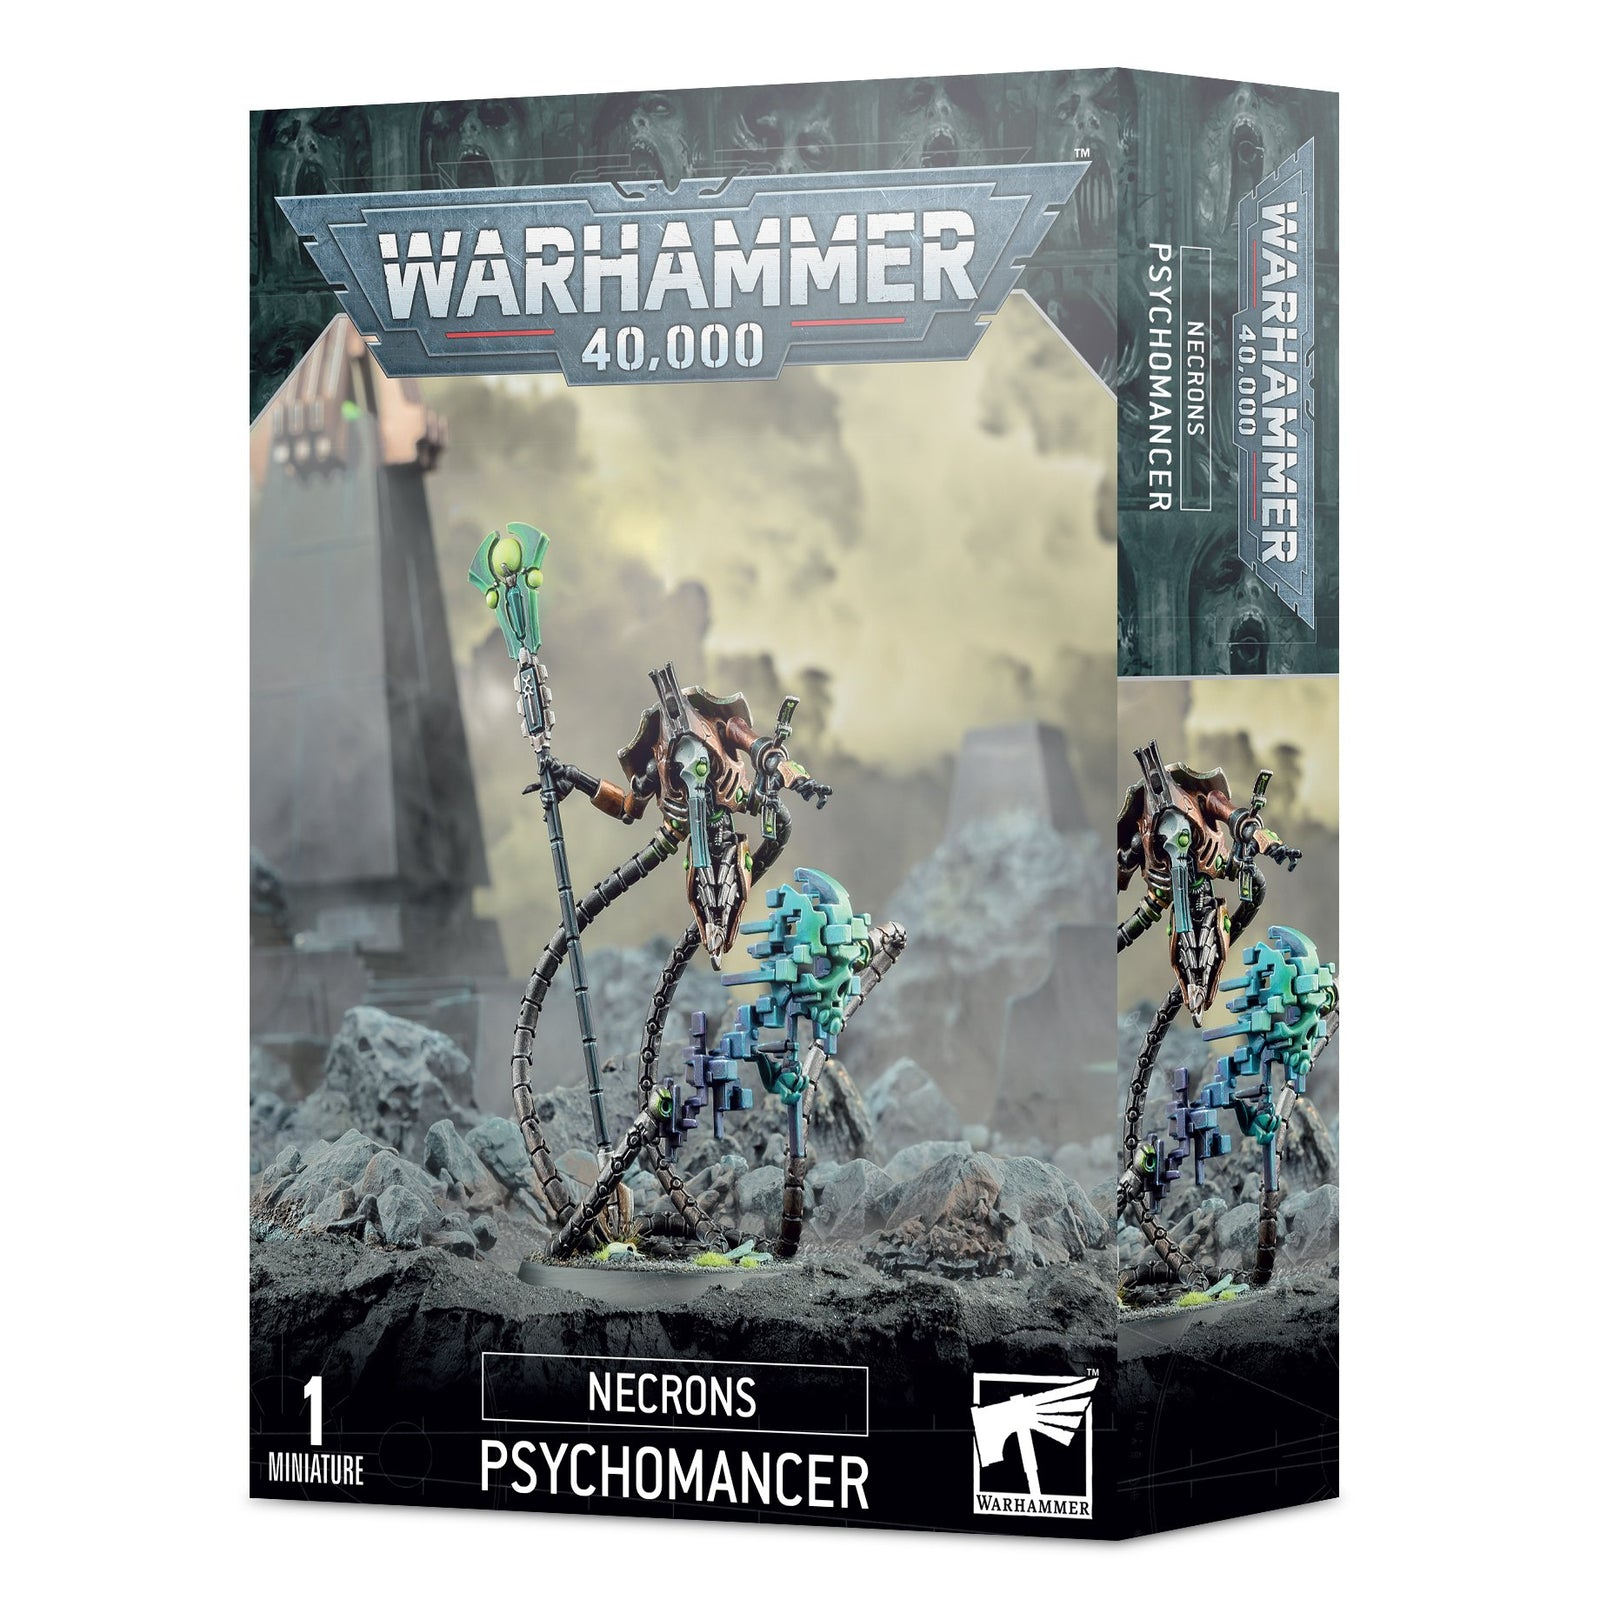 Box Packaging for Psychomancer